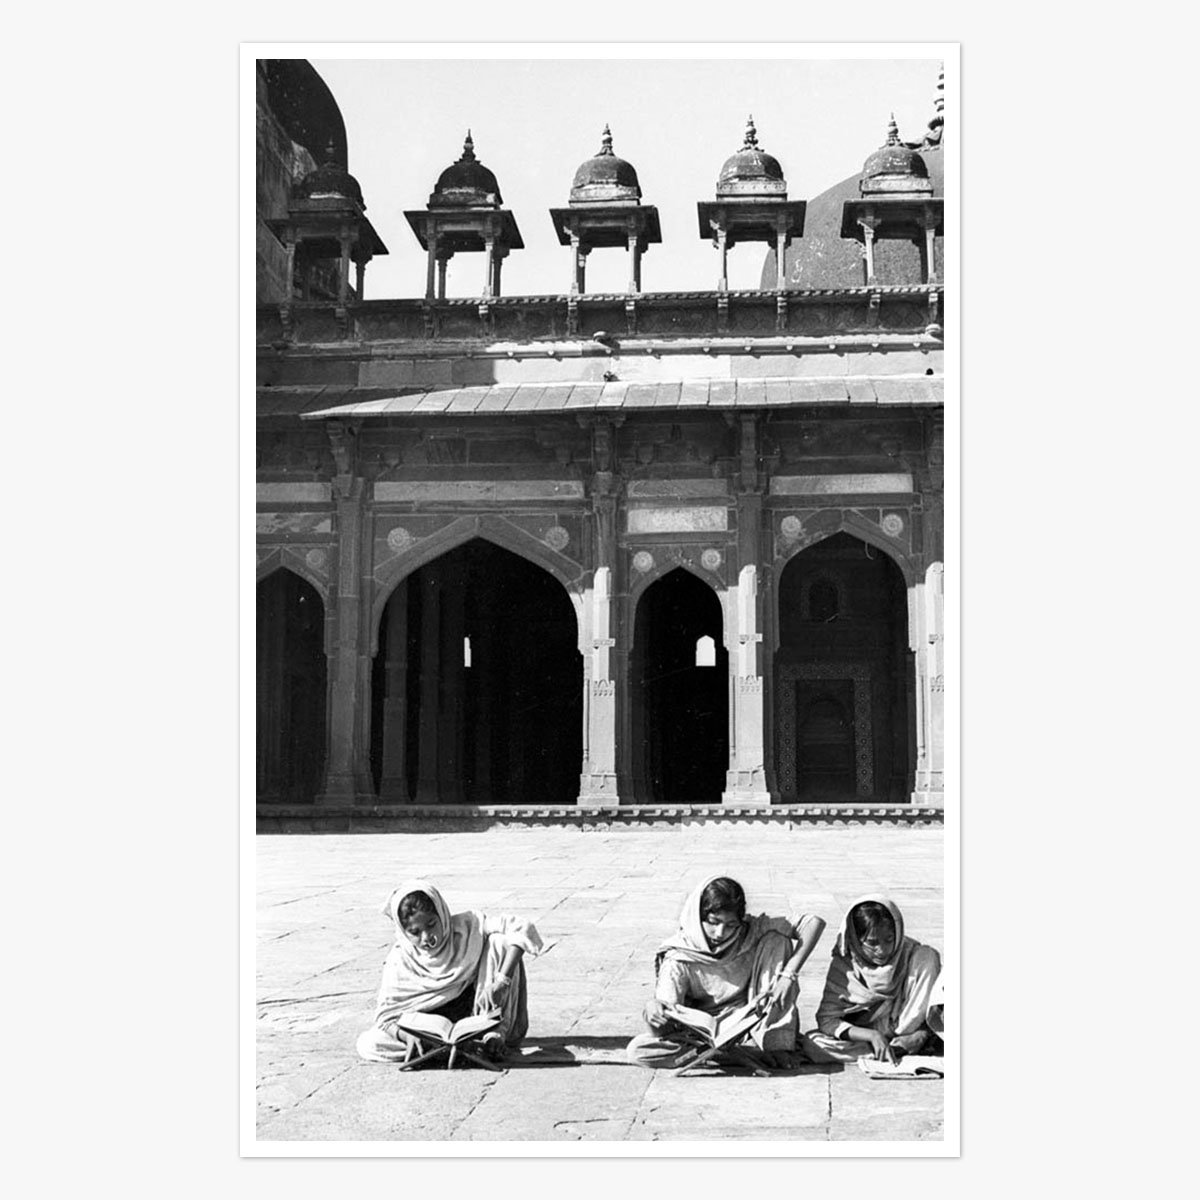 Young girls reading the Koran outside of a mosque by Marilyn Stafford